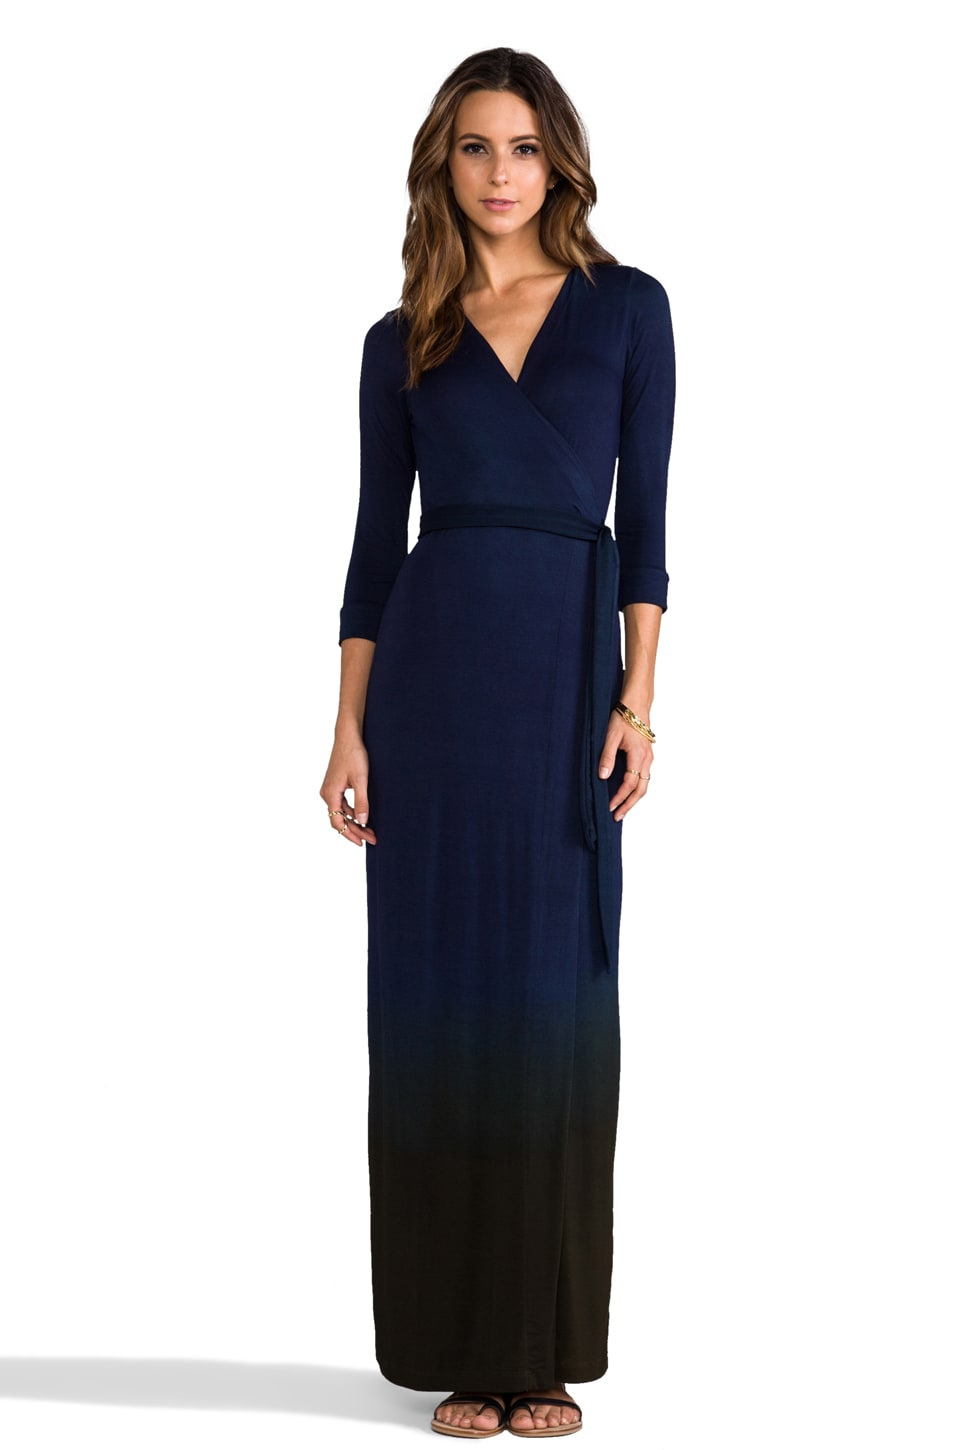 Saint Grace Celine Maxi Wrap Dress in Liberty/Army Ombre